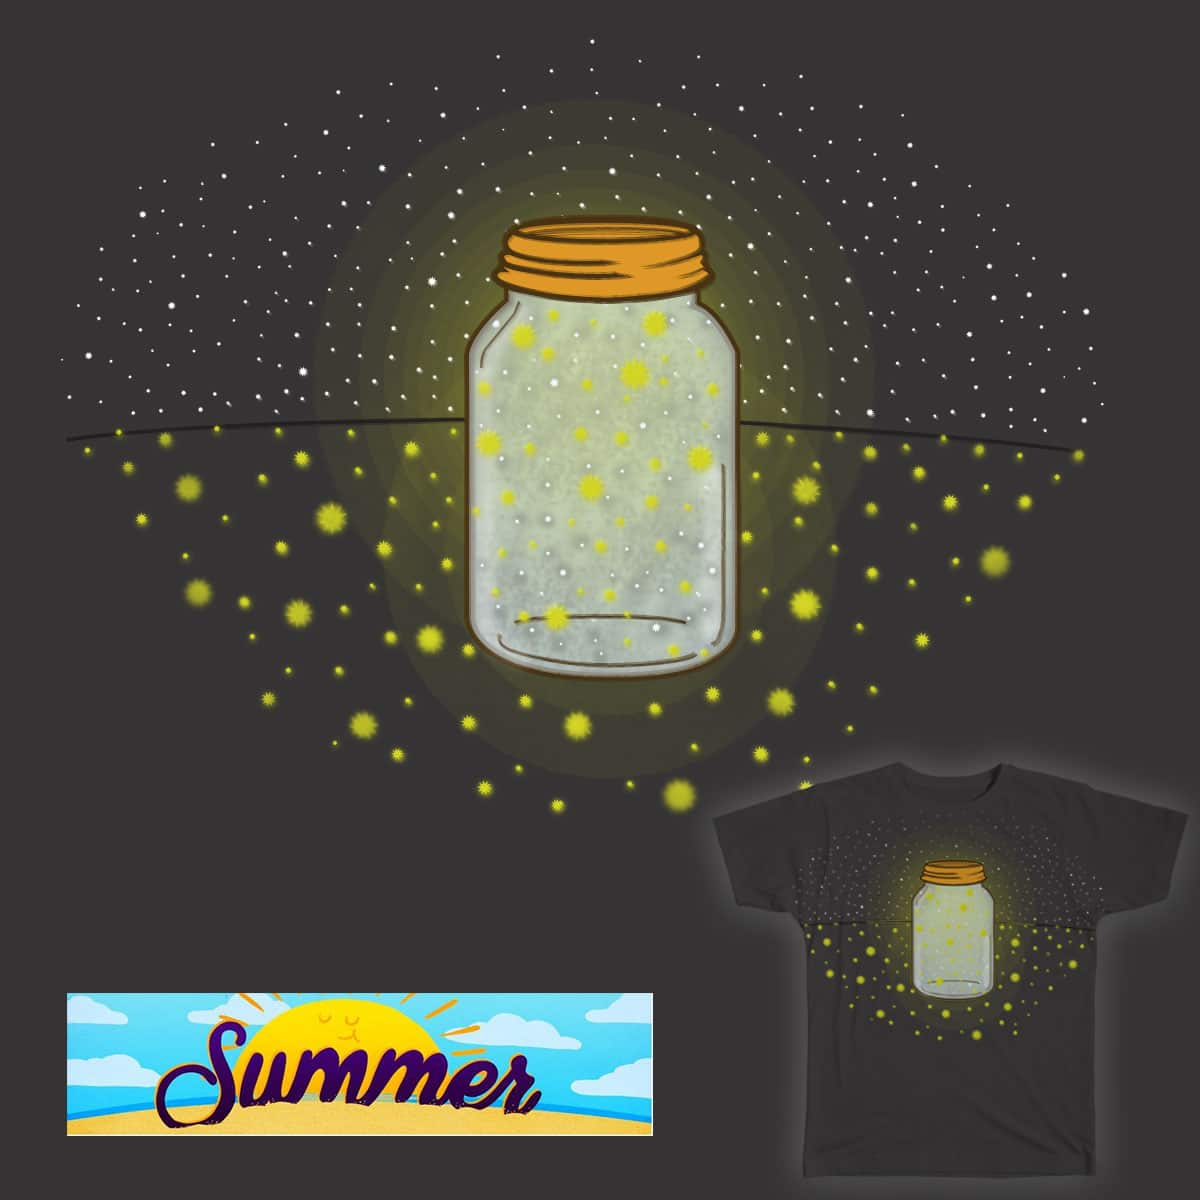 Country Summer Nights by dhrdesign on Threadless